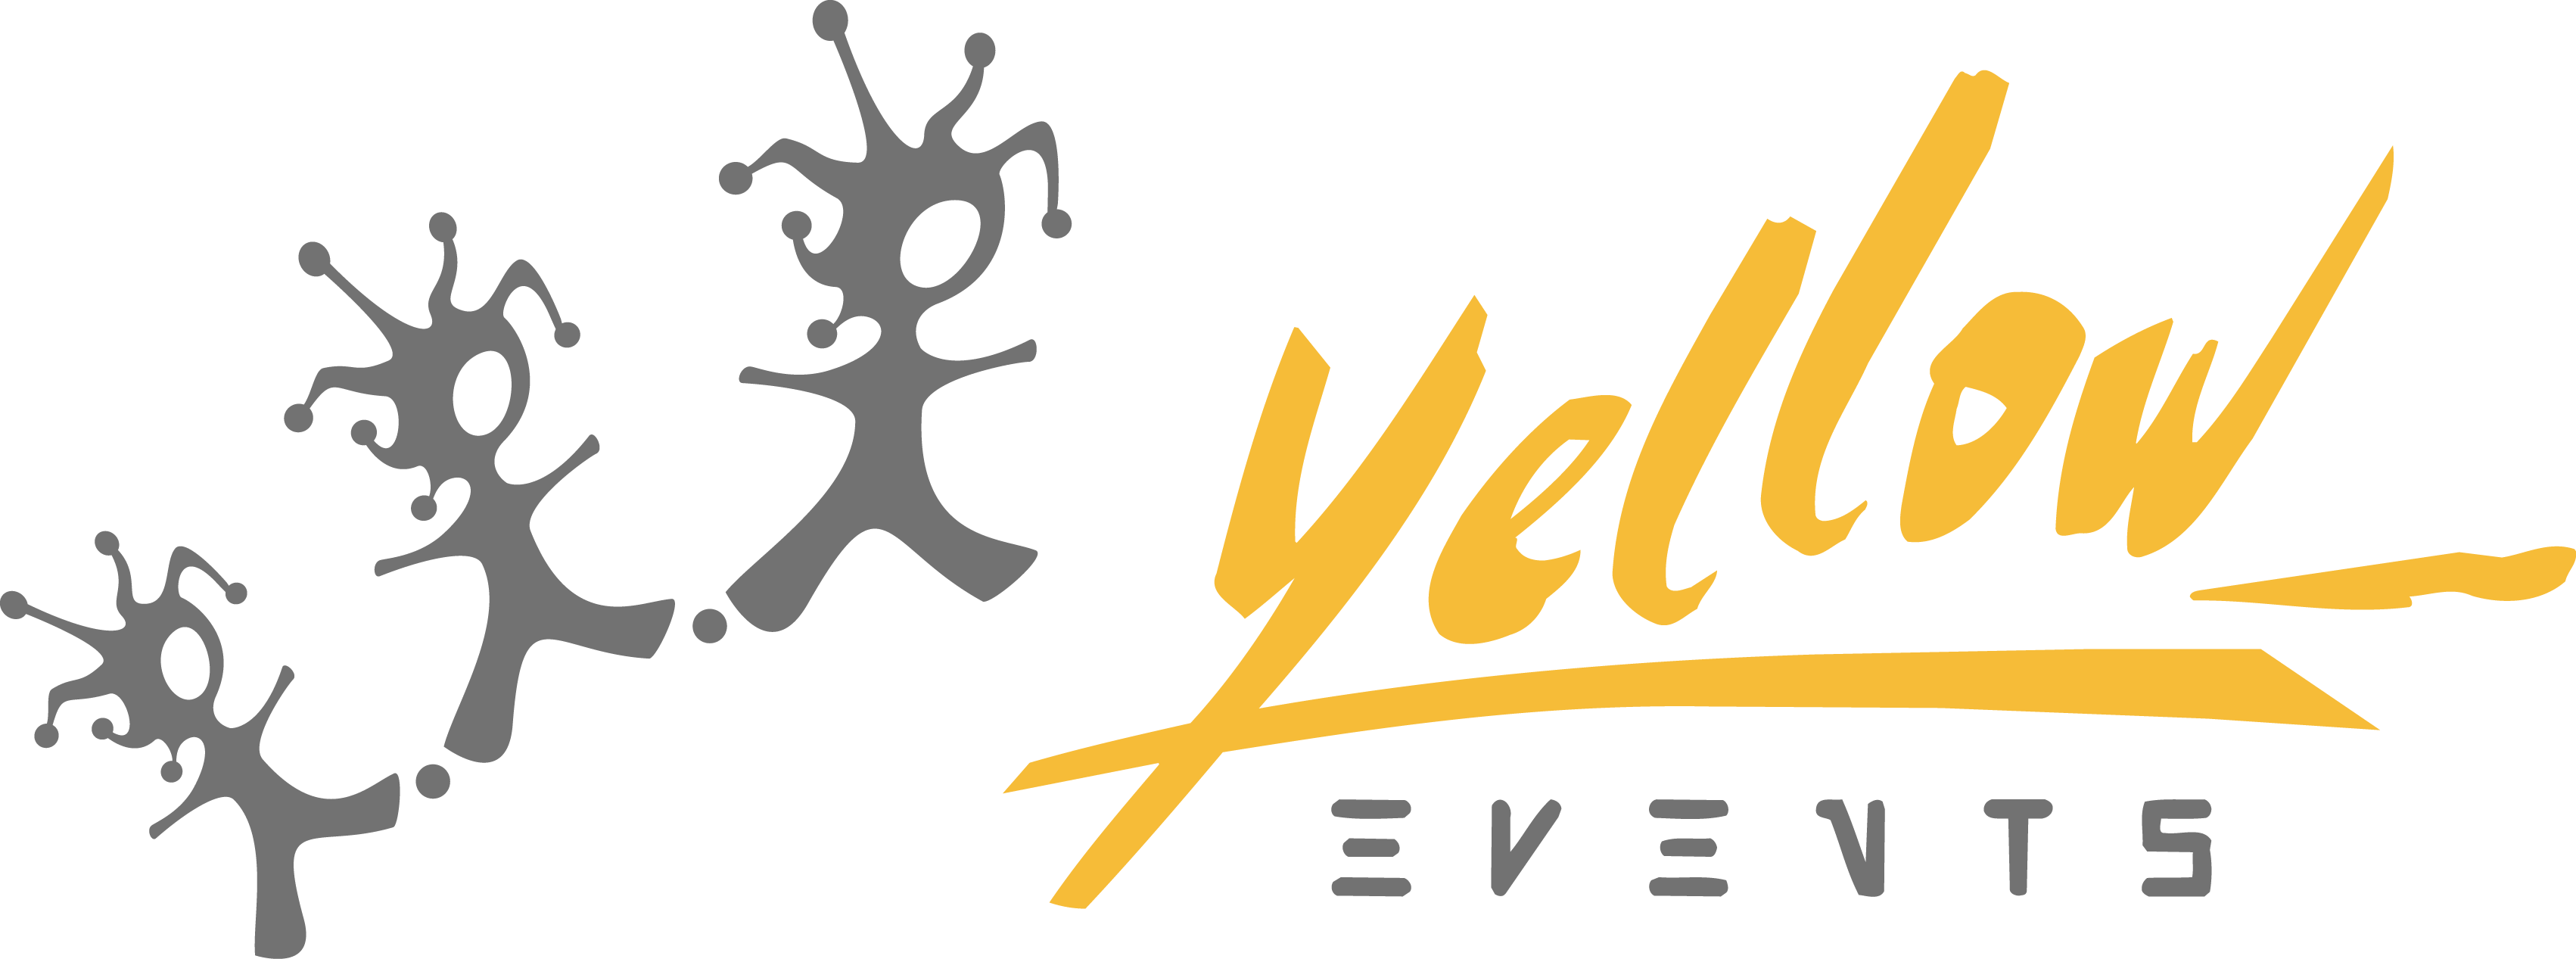 logo_Yellow_events